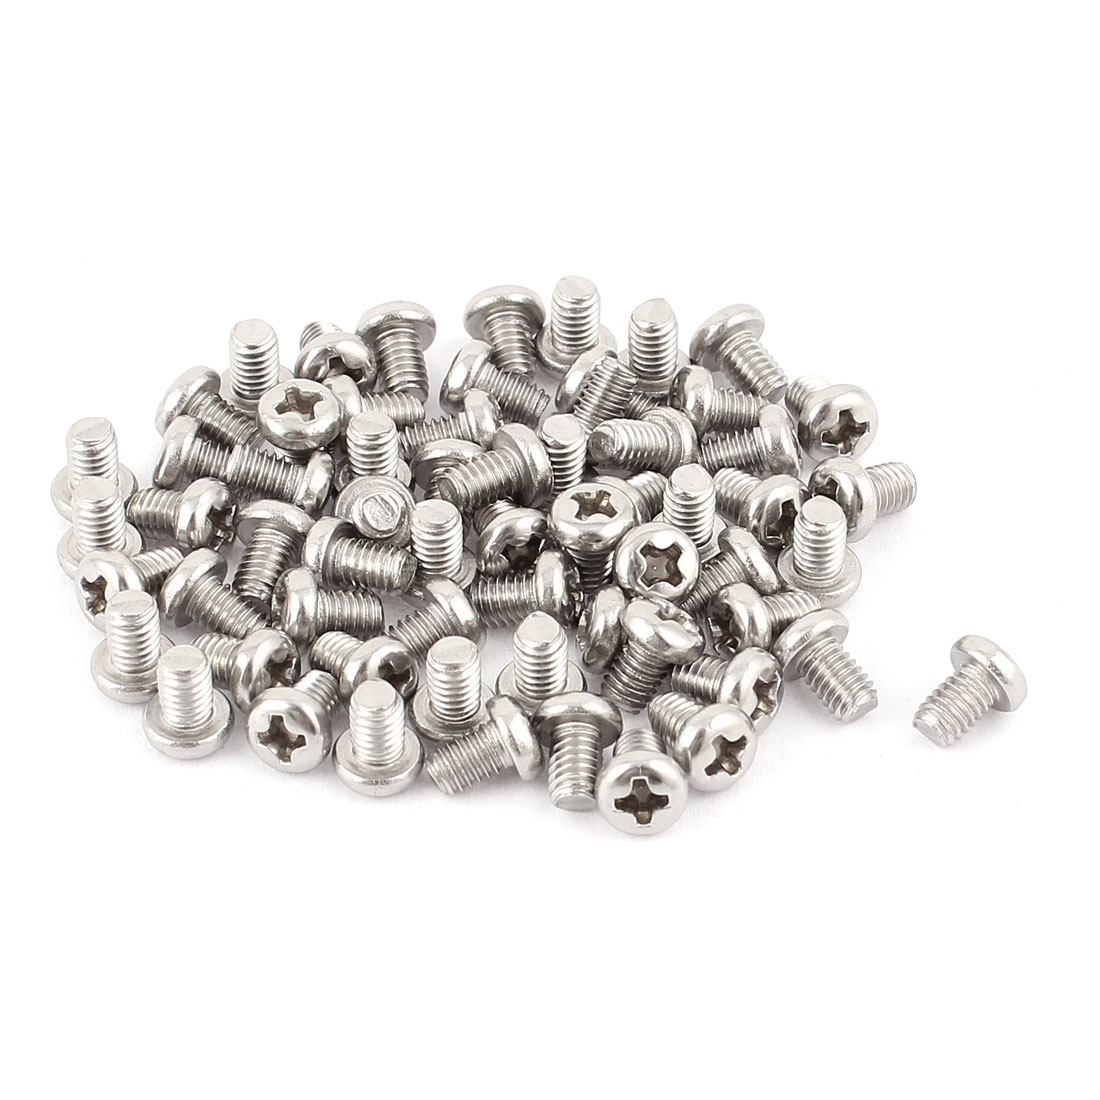 M4 x 6mm 304 Stainless Steel Crosshead Phillips Pan Head Screws Bolt 60pcs